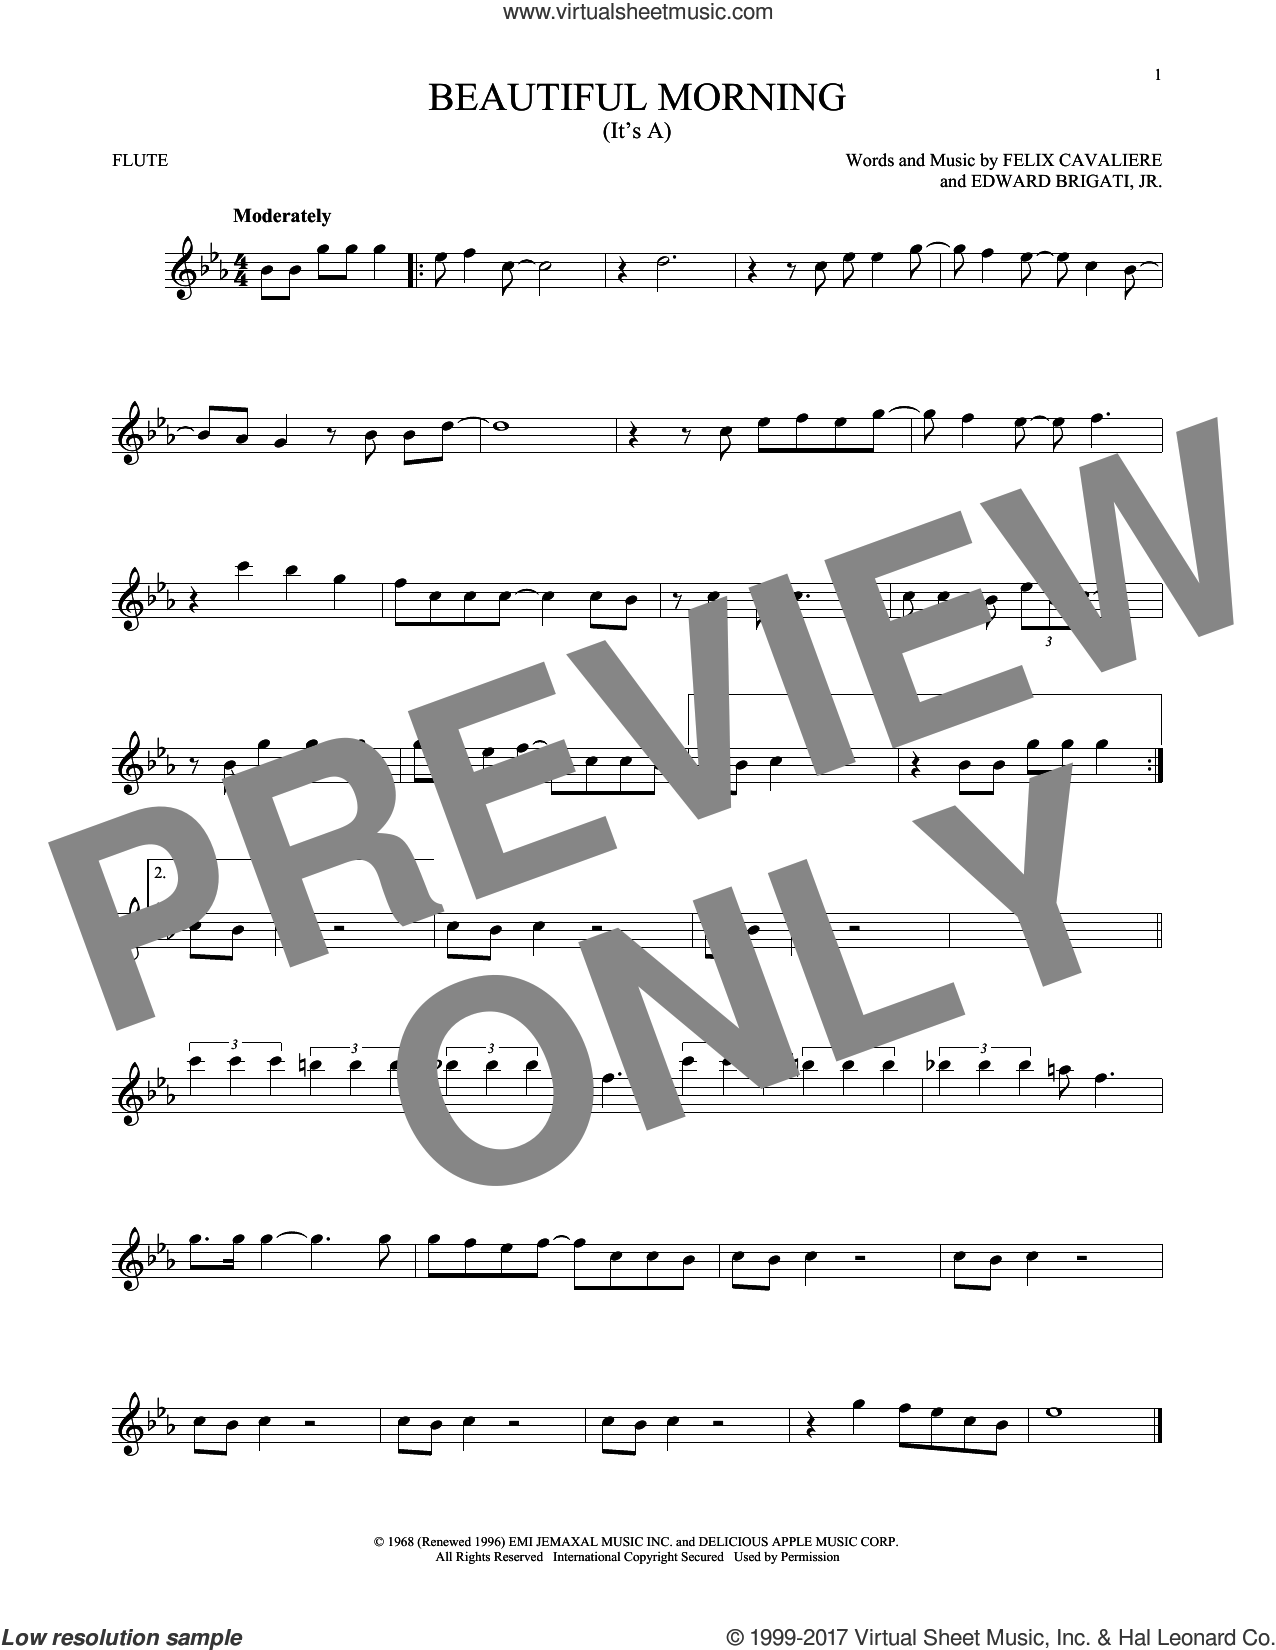 (It's A) Beautiful Morning sheet music for flute solo by The Rascals, Edward Brigati, Jr. and Felix Cavaliere, intermediate skill level